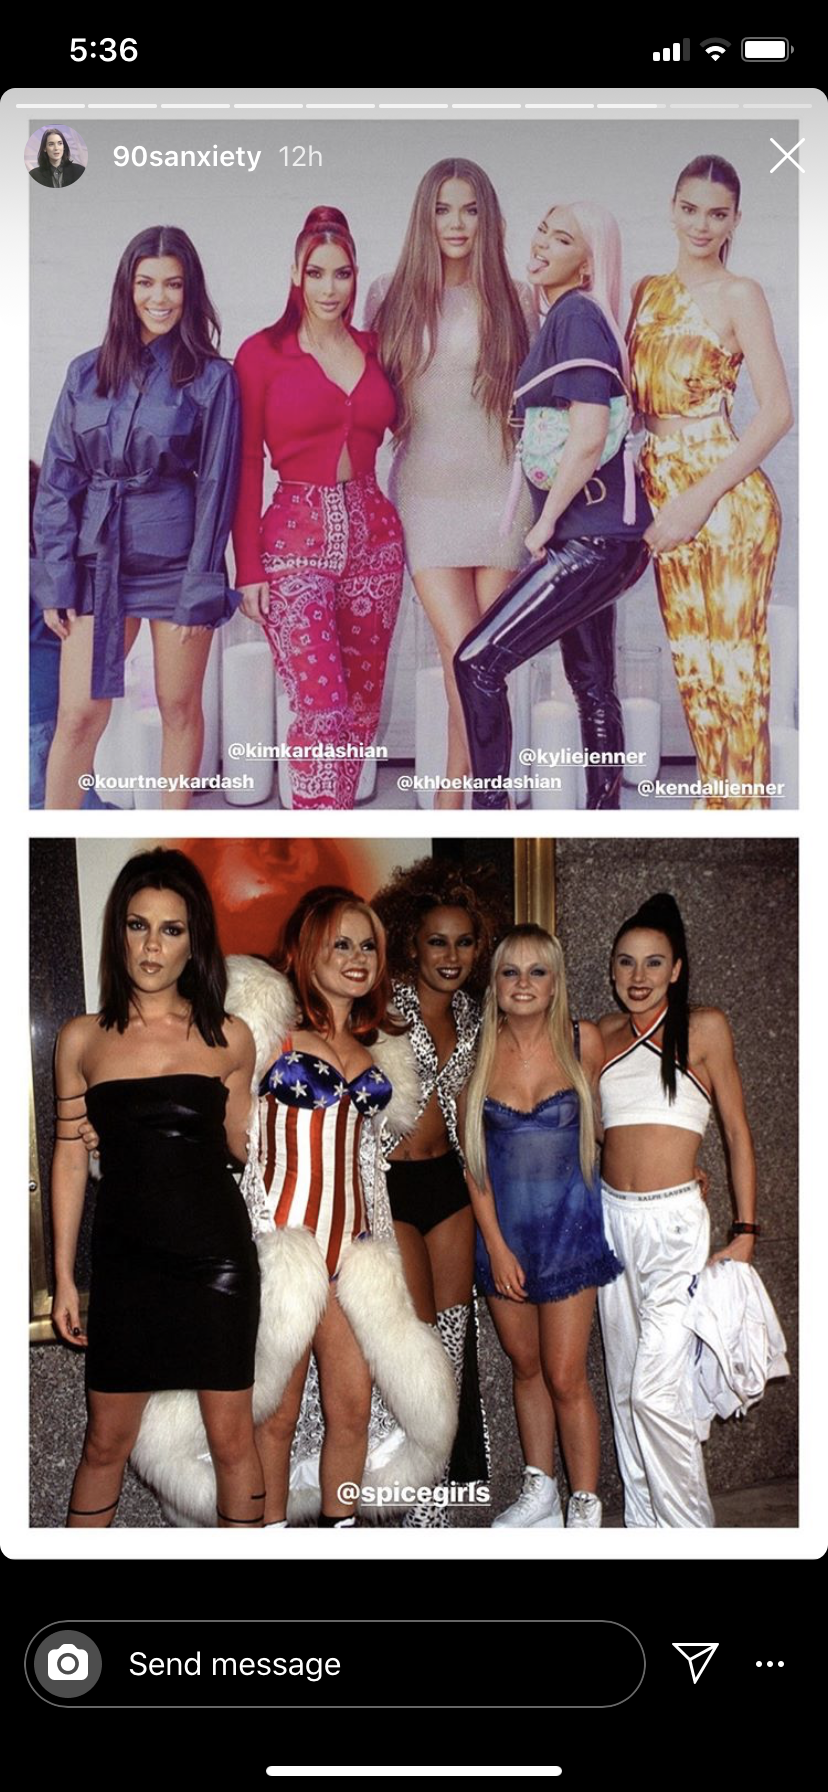 Kardashian-Jenners and the Spice Girls